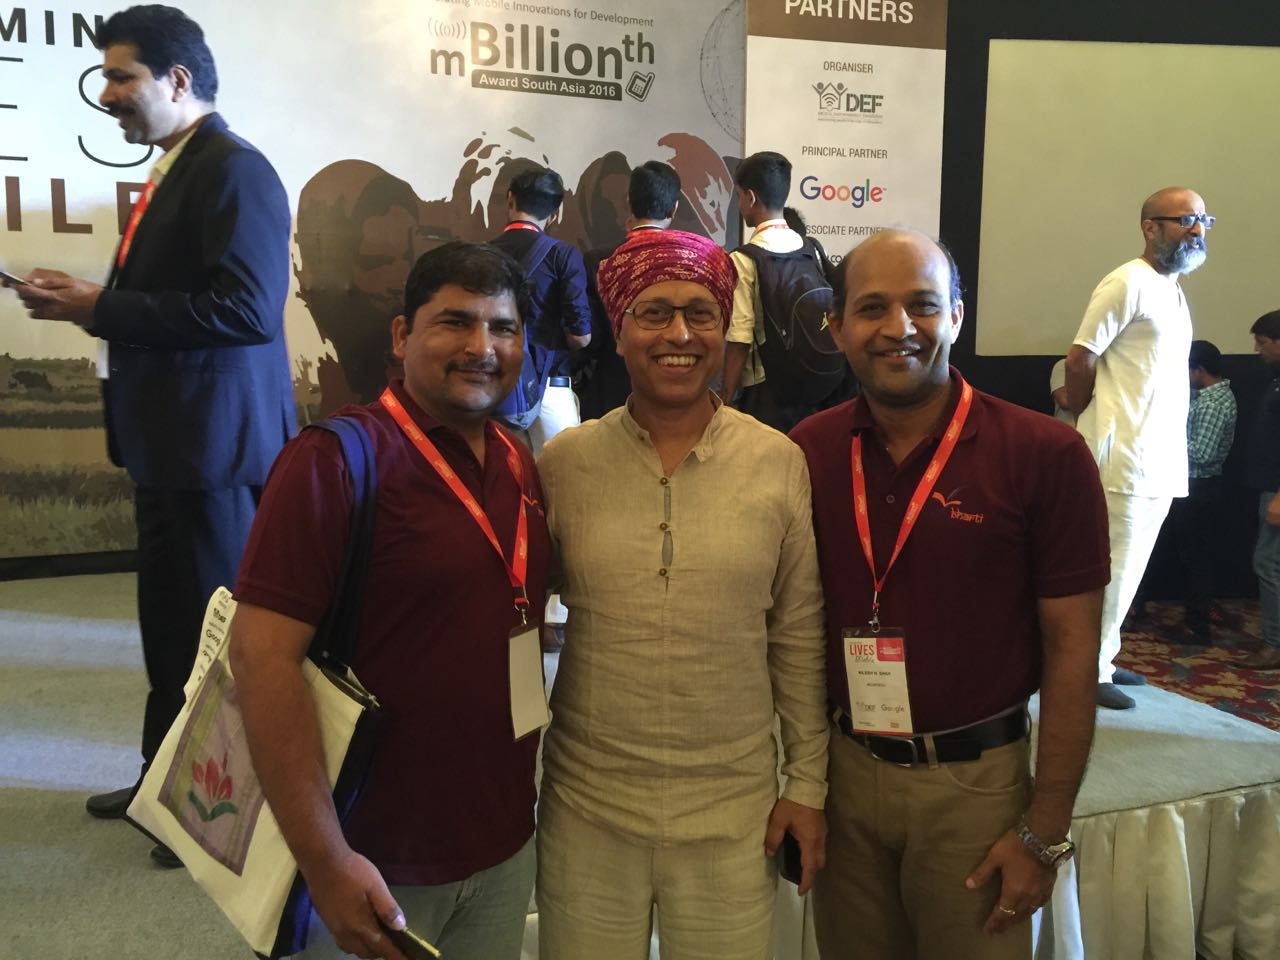 @matrubharti team with @OsamaManzar , the brain behind #mBillionth2016 @mBillionth @DEFindia https://t.co/0yLBrJ52zQ